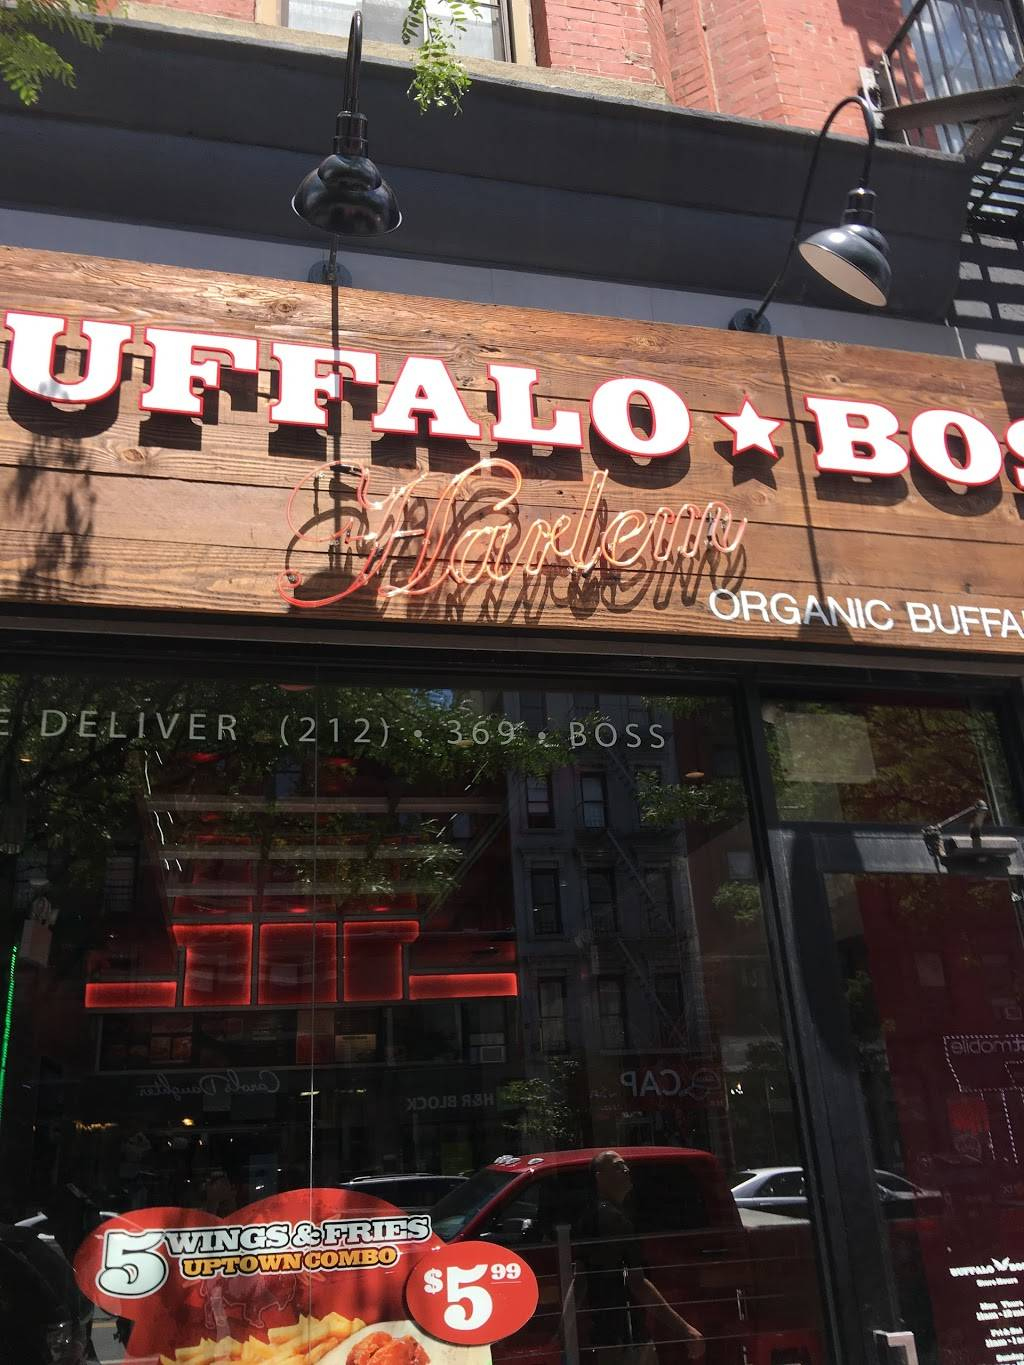 Buffalo Boss | restaurant | 17 W 125th St, New York, NY 10027, USA | 2123692677 OR +1 212-369-2677